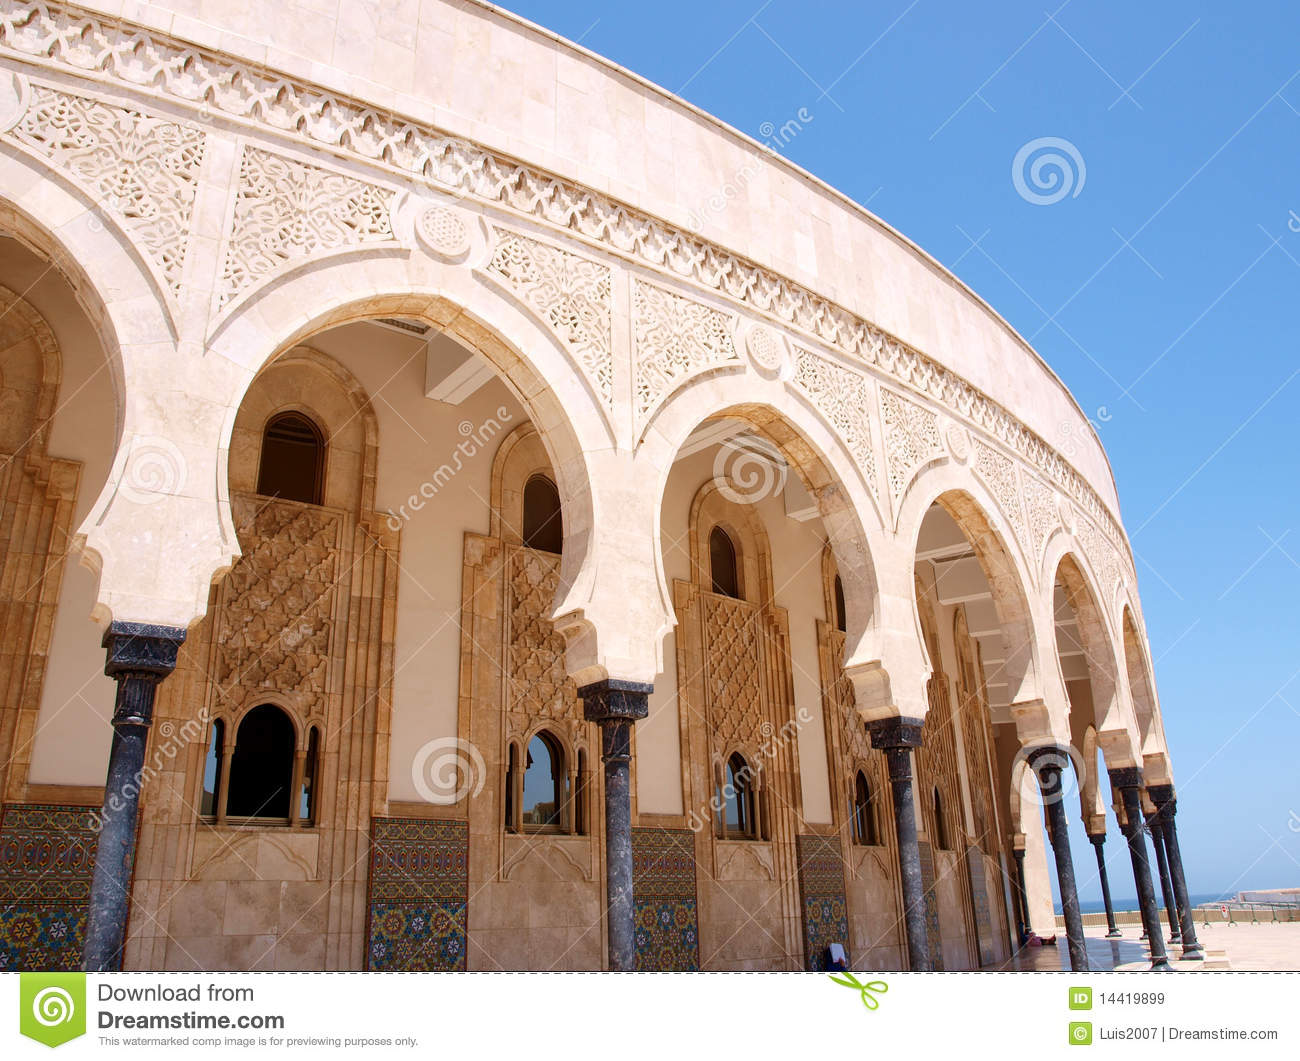 Download Arches stock image. Image of detail, arches, decoration - 14419899